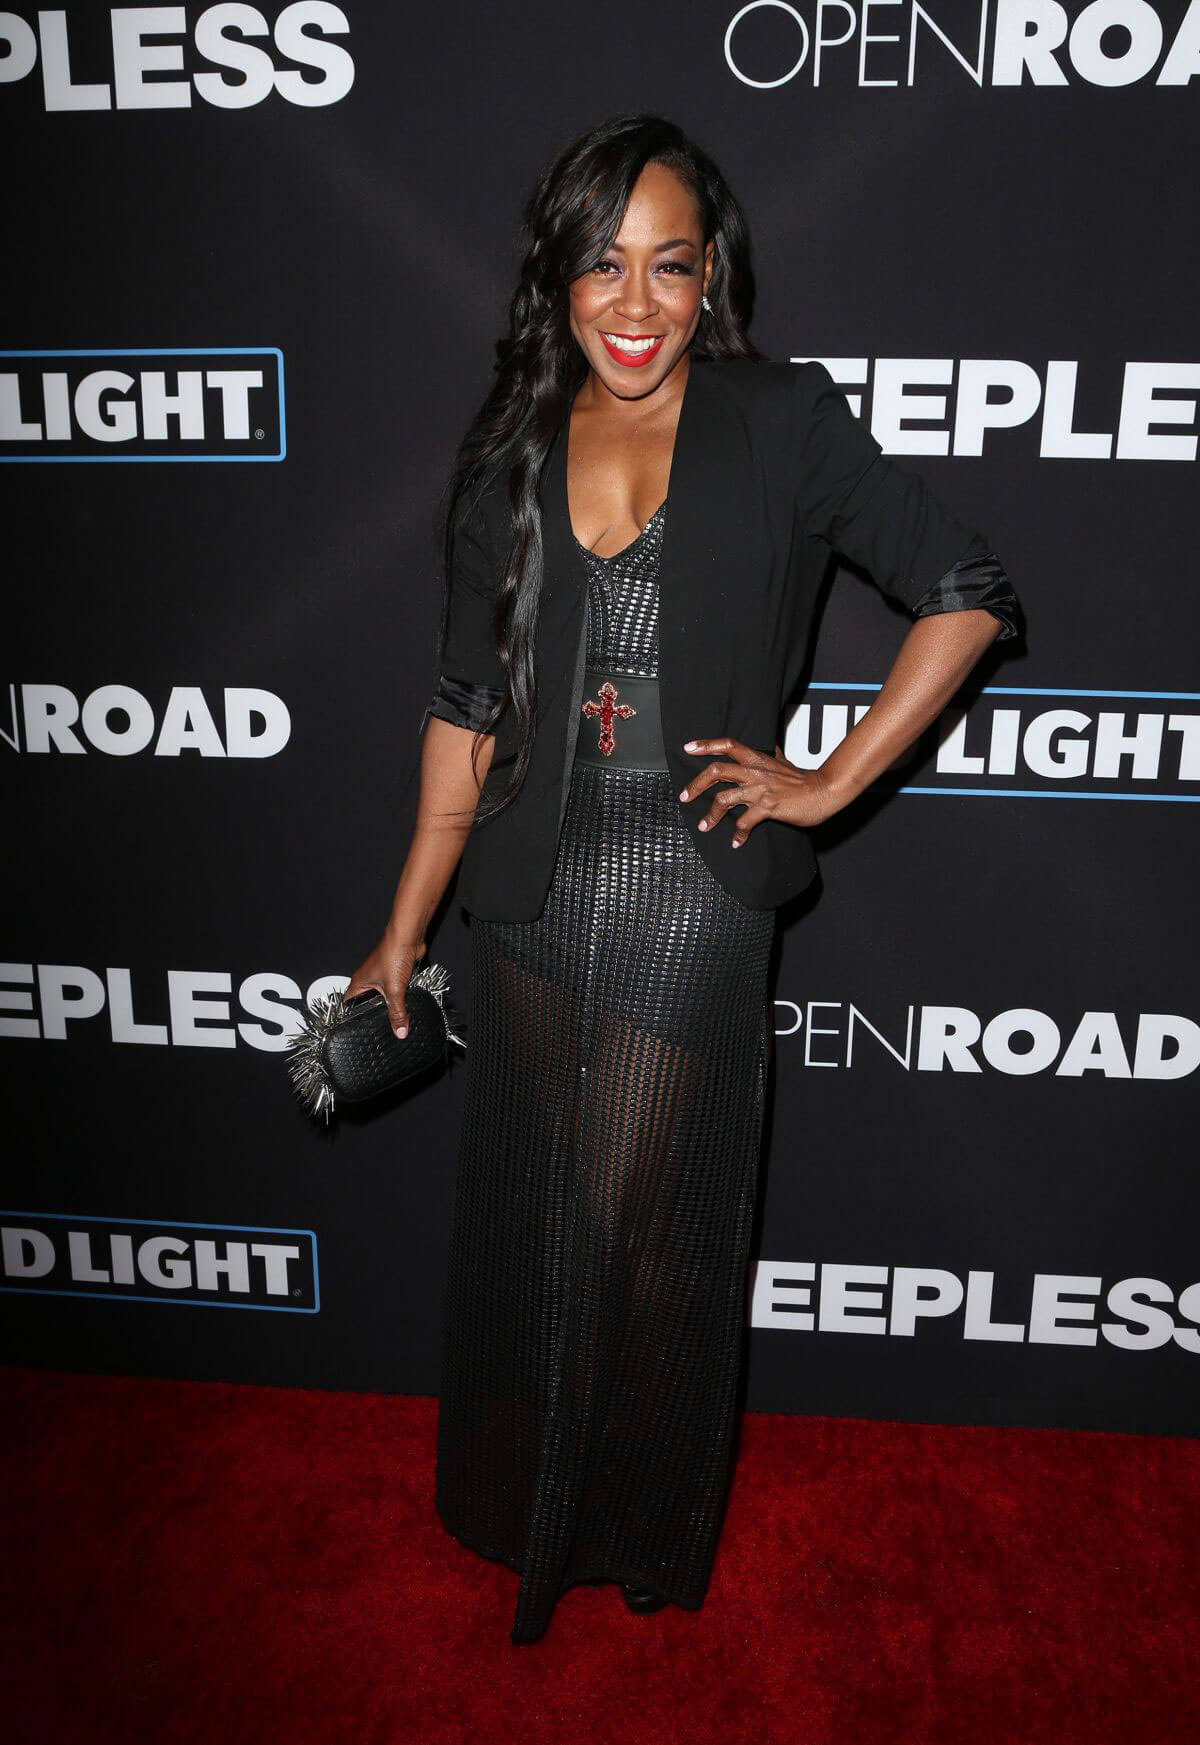 Tichina Arnold at 'Sleepless' Premiere in Los Angeles